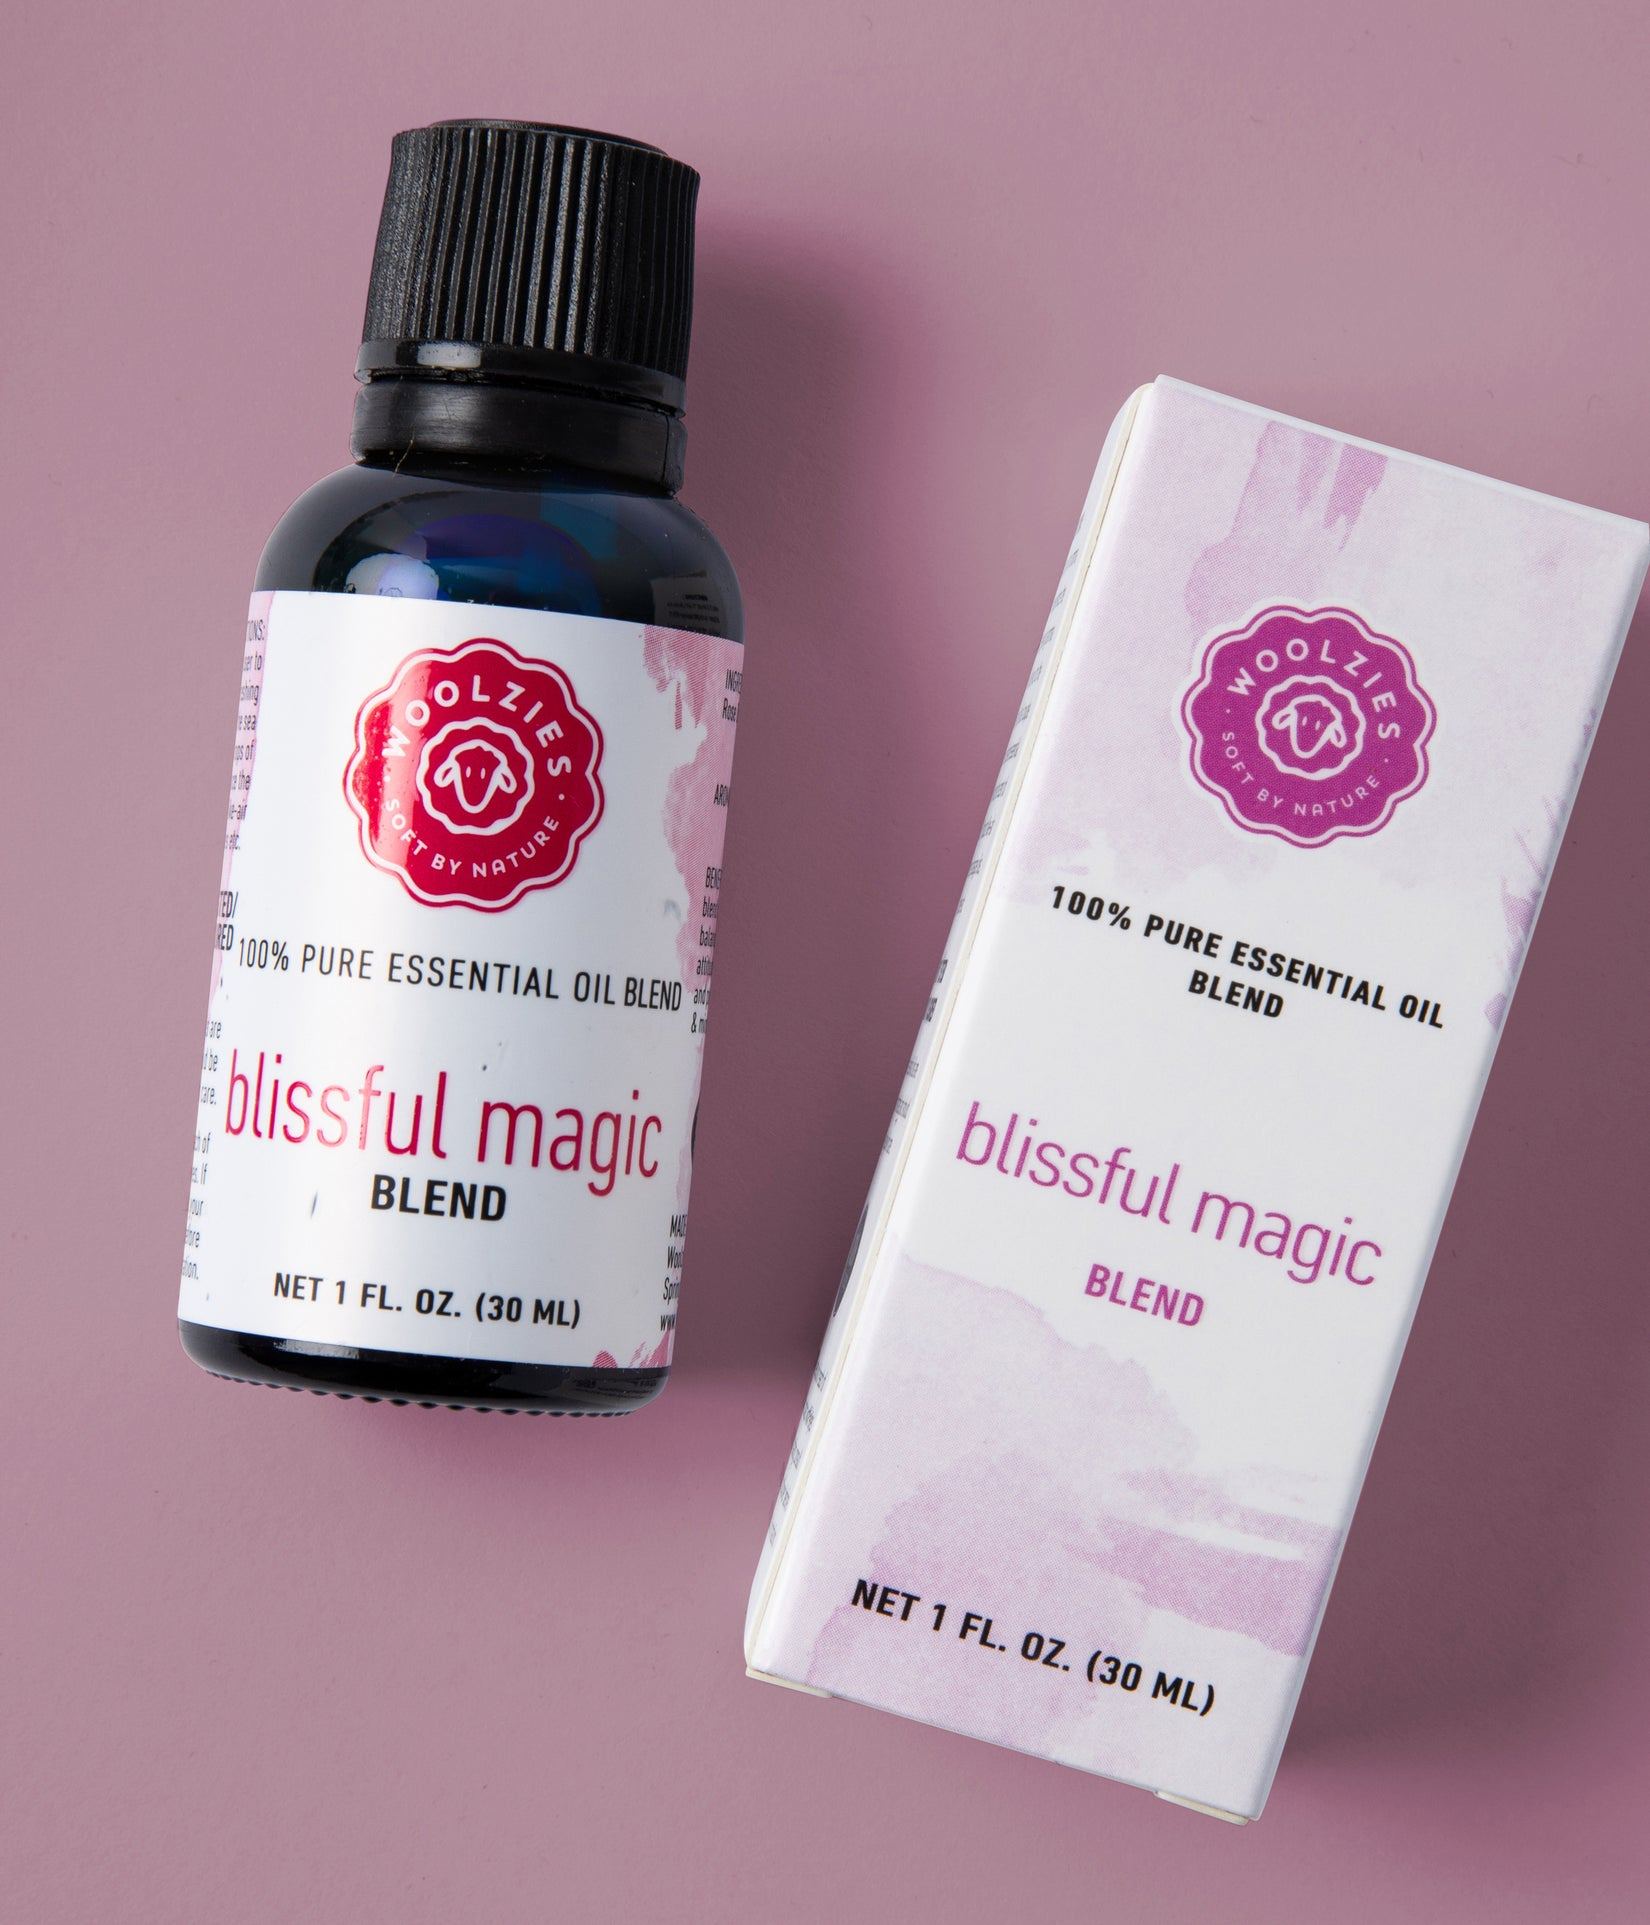 Blissful Magic Blend